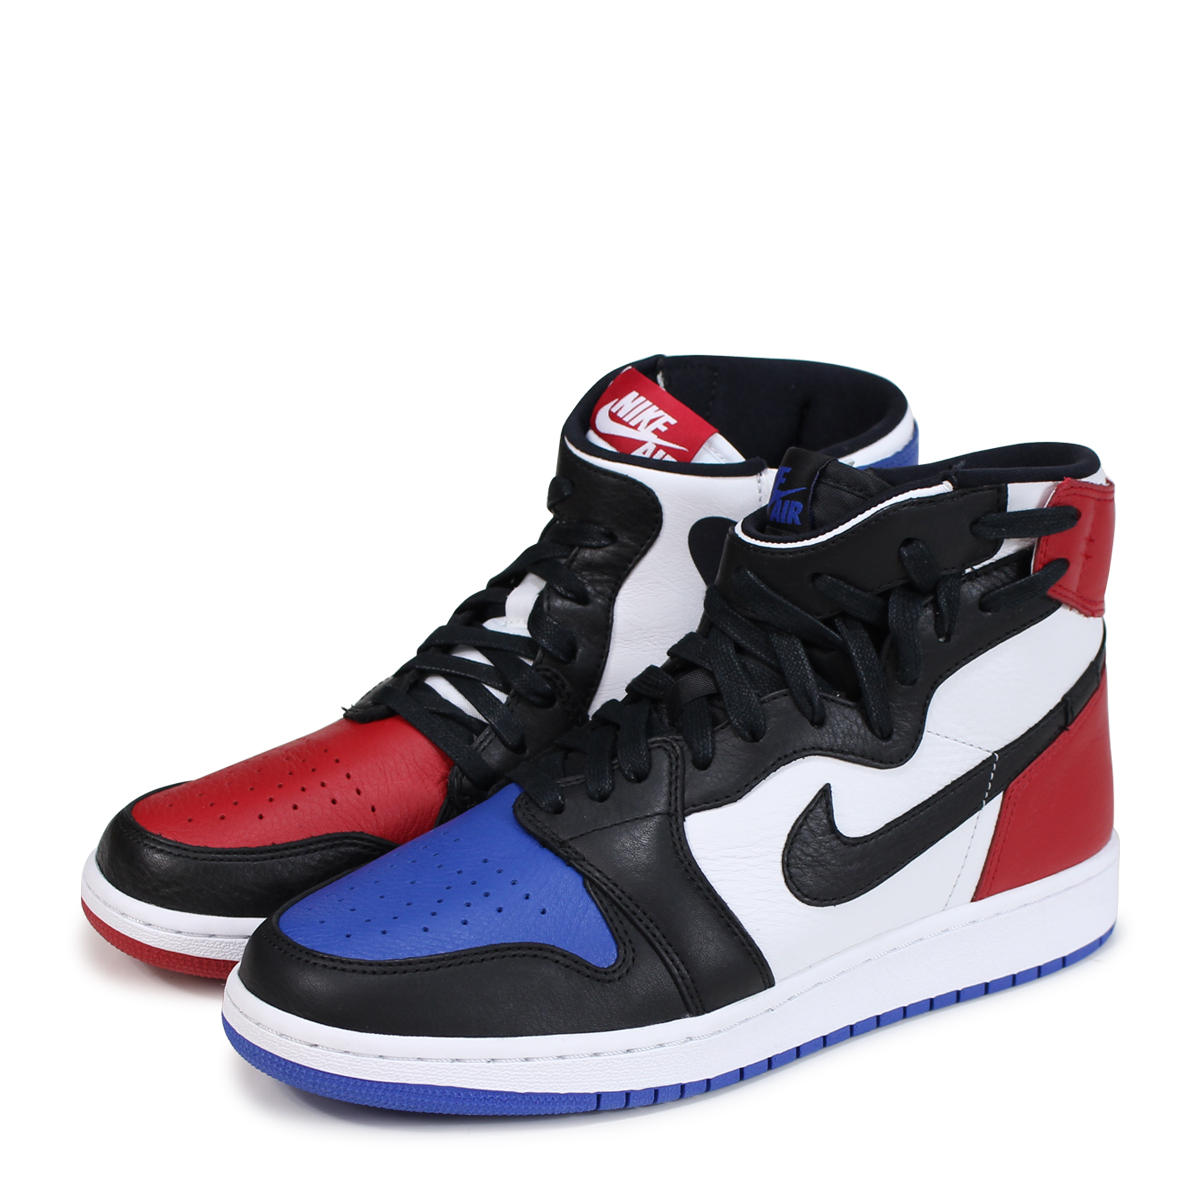 pretty nice 55cec 66f0e NIKE WMNS AIR JORDAN 1 REBEL XX OG Nike Air Jordan 1 nostalgic sneakers  Lady's AT4151-001 black [load planned Shinnyu load in reservation product  6/29 ...